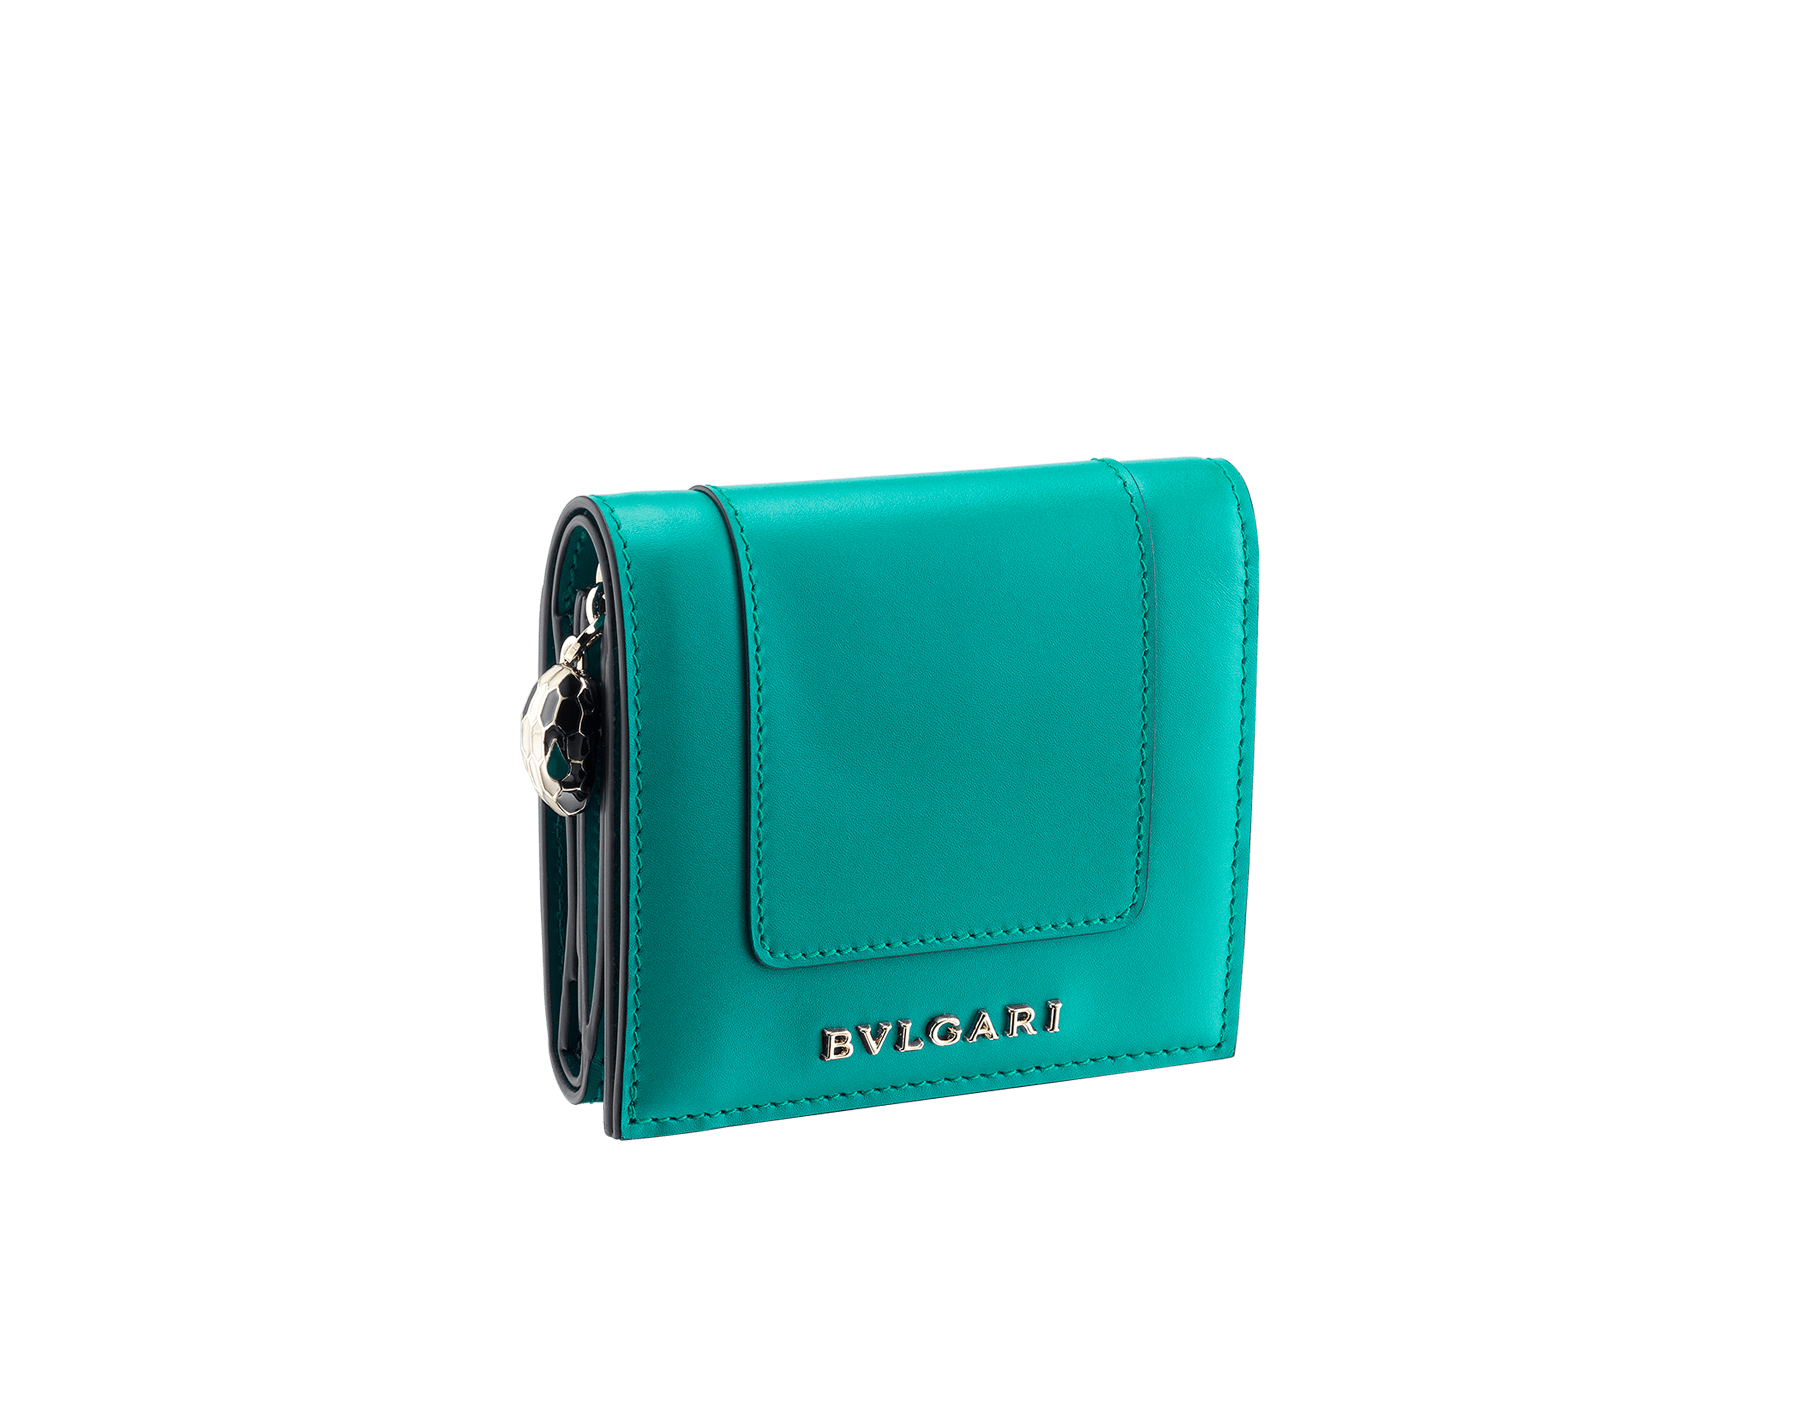 Serpenti Forever super compact wallet in tropical tourquoise and deep jade calf leather. Iconic snakehead stud closure in black and white enamel, with green malachite enamel eyes. 288038 image 1